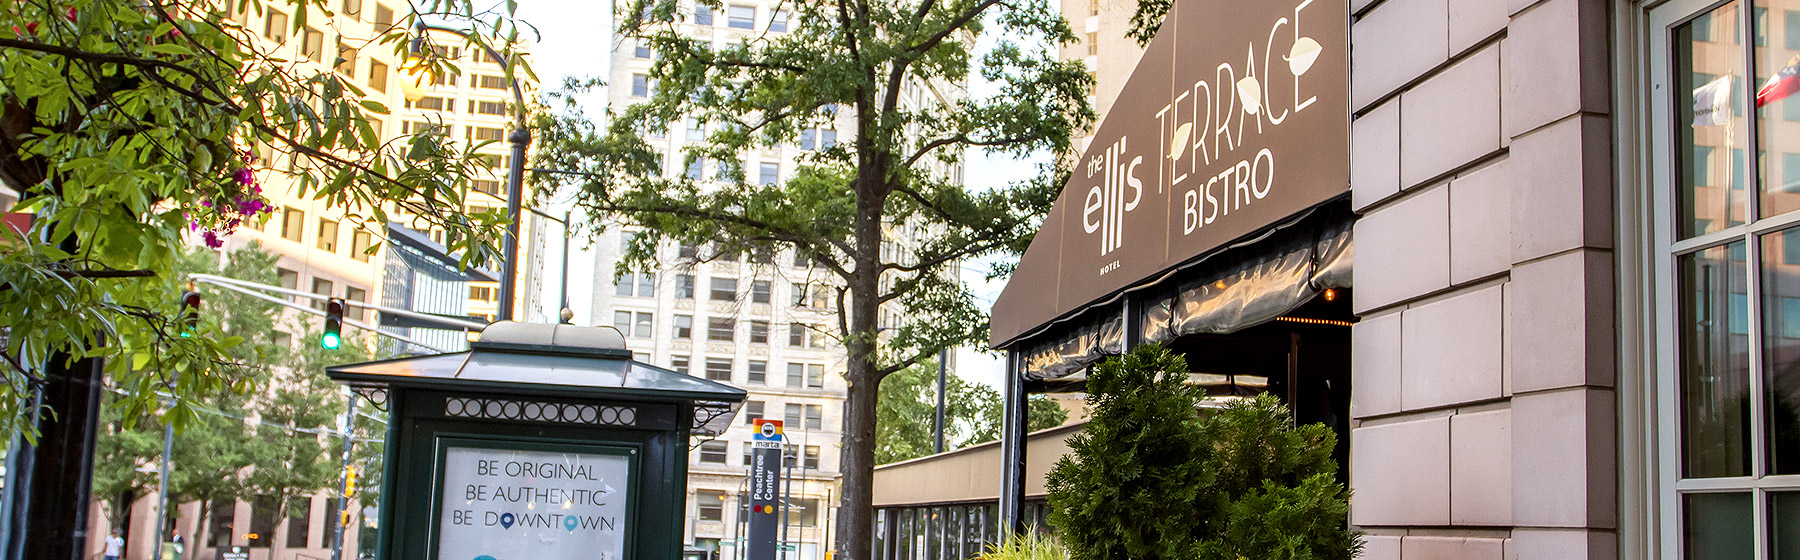 Enjoy The Ellis Hotel in Atlanta